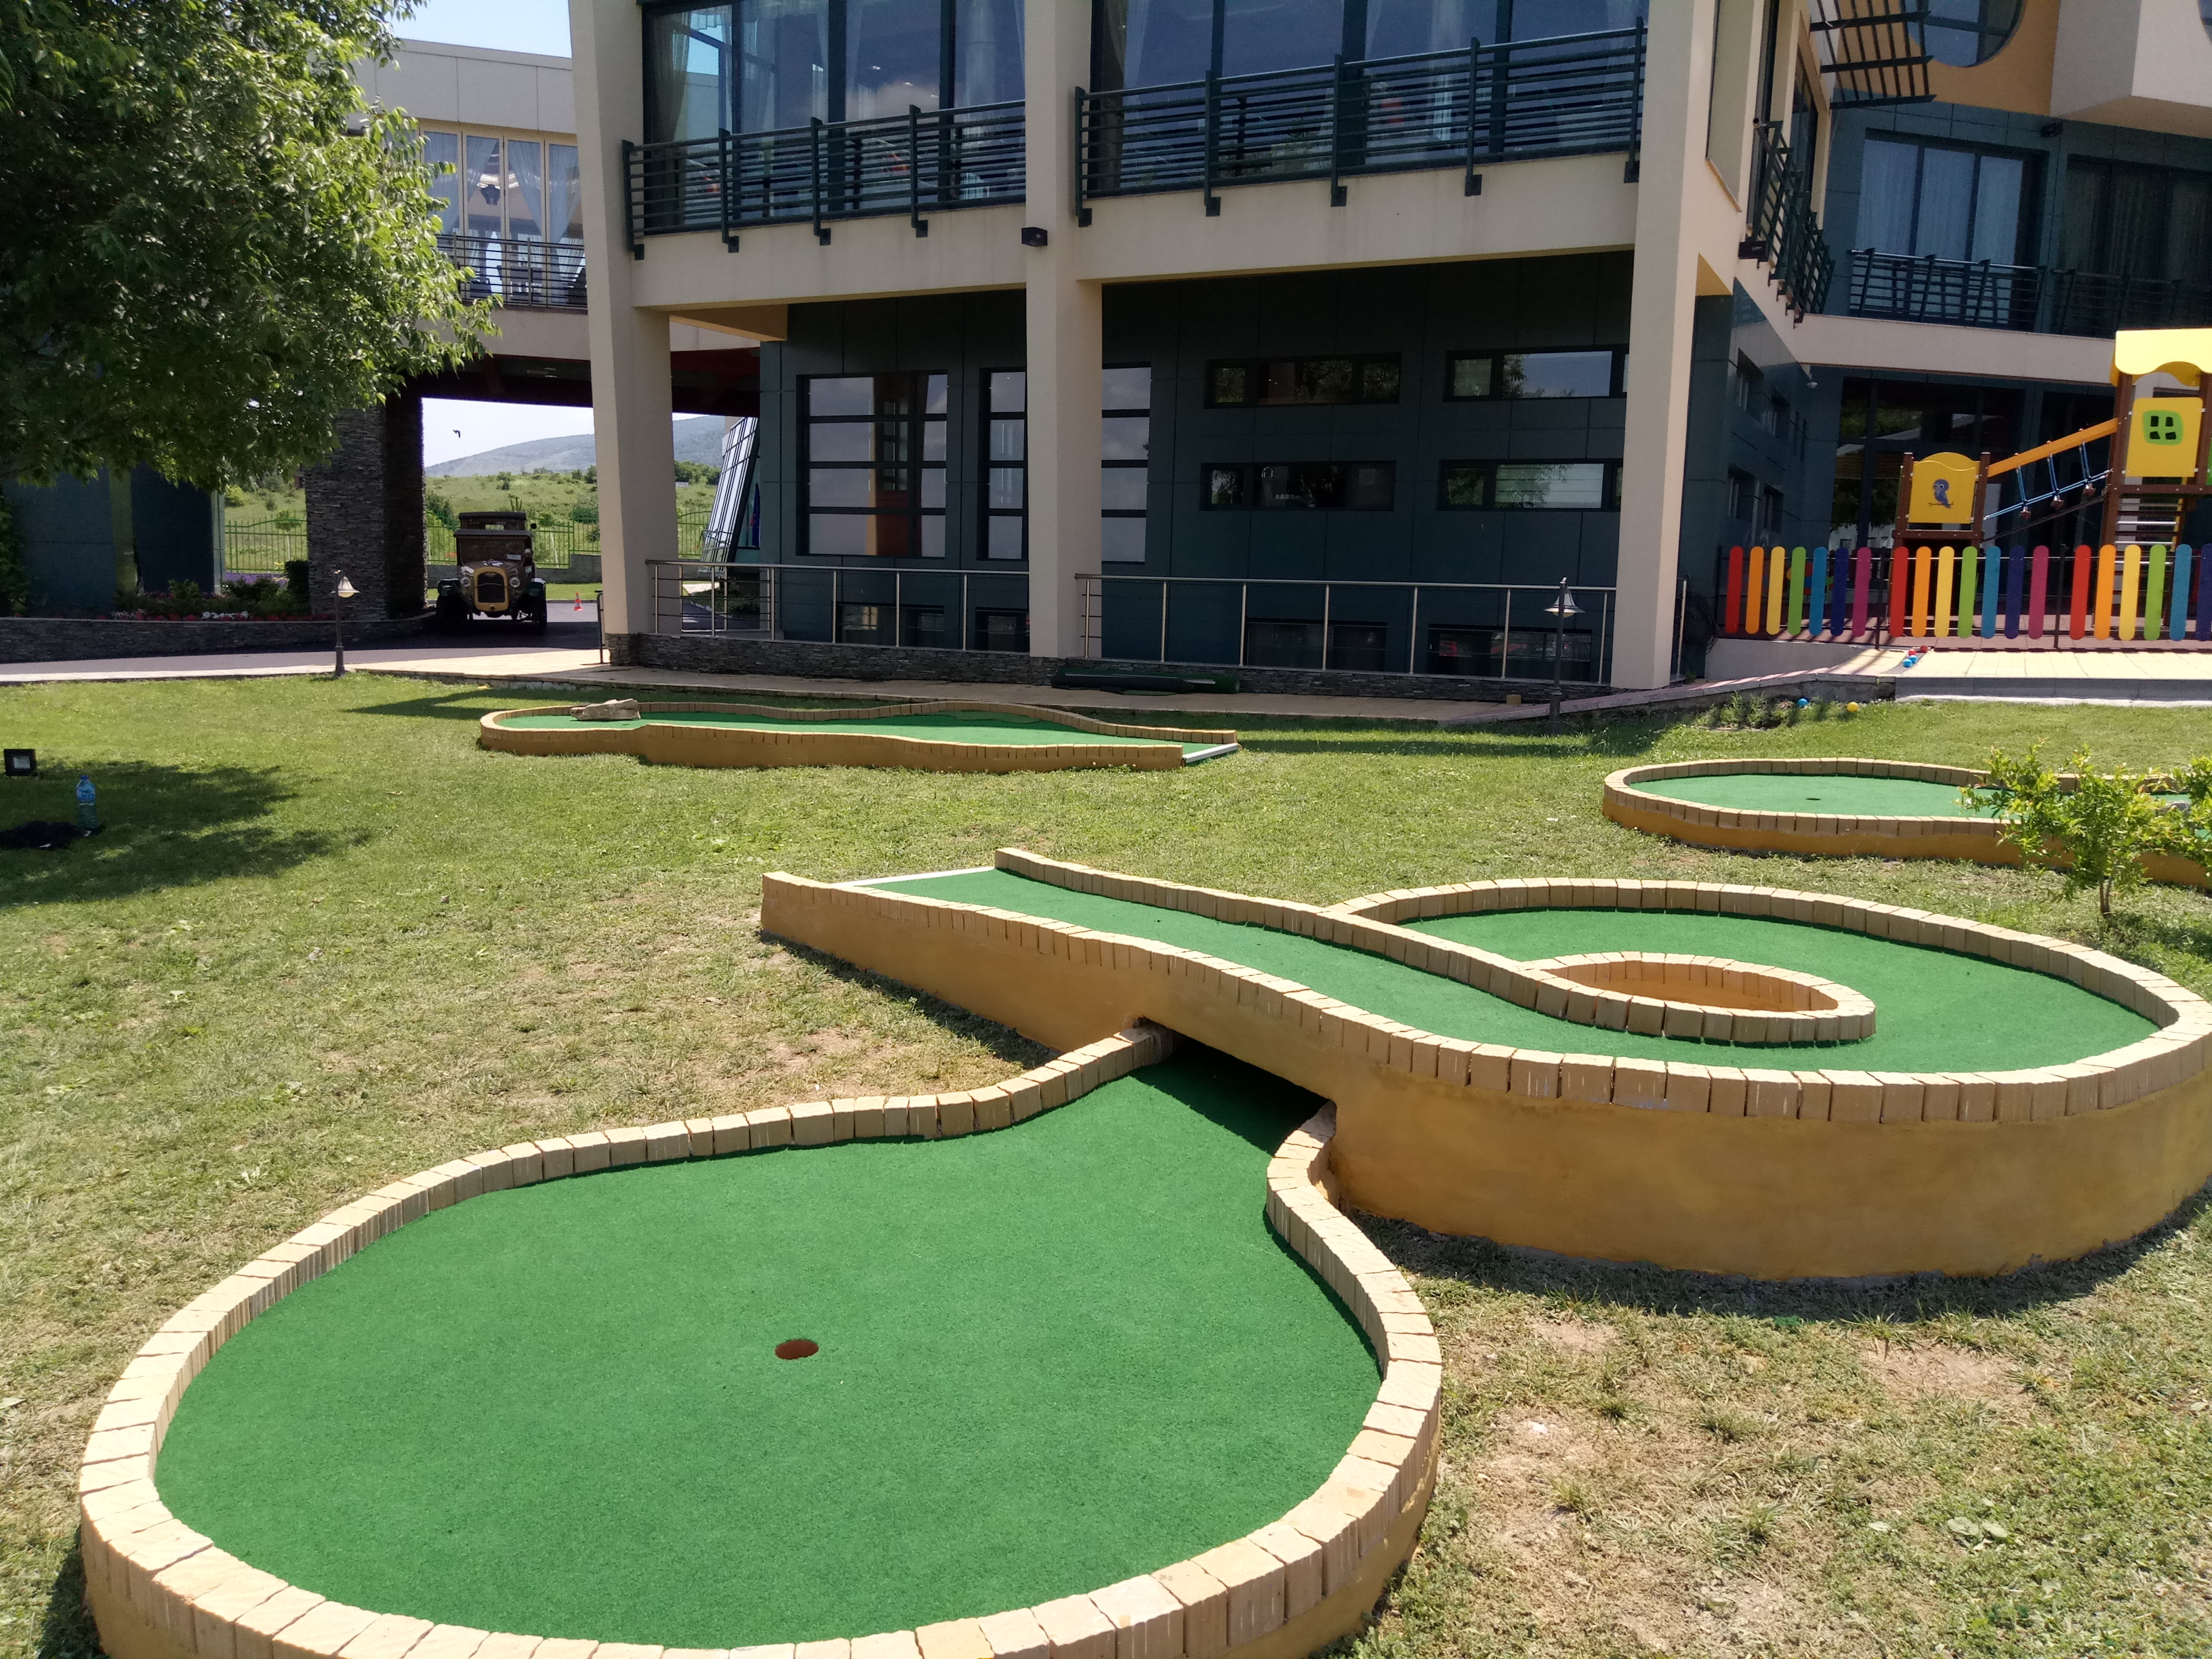 Enjoyable Portable Miniature Golf Courses For Indoor And Outdoor Use Download Free Architecture Designs Intelgarnamadebymaigaardcom